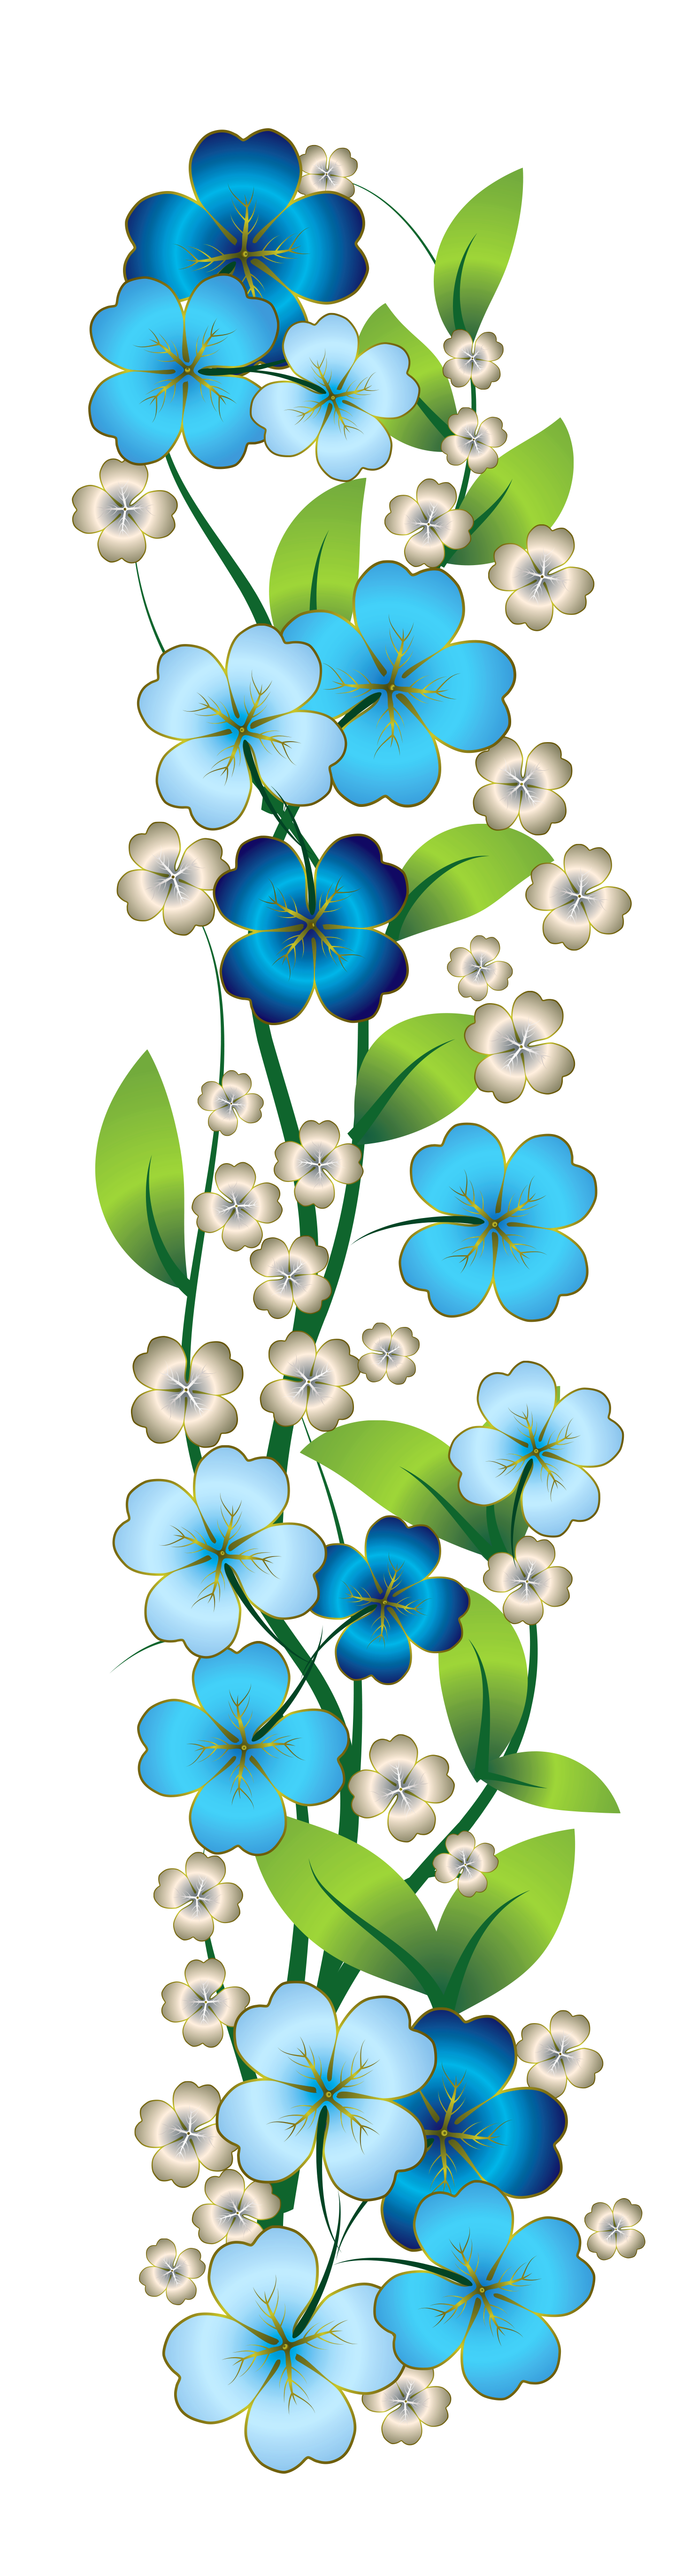 Blue and yellow flower clipart jpg freeuse library Blue Flower Decor PNG Clipart | Flowers | Pinterest | Blue flowers ... jpg freeuse library